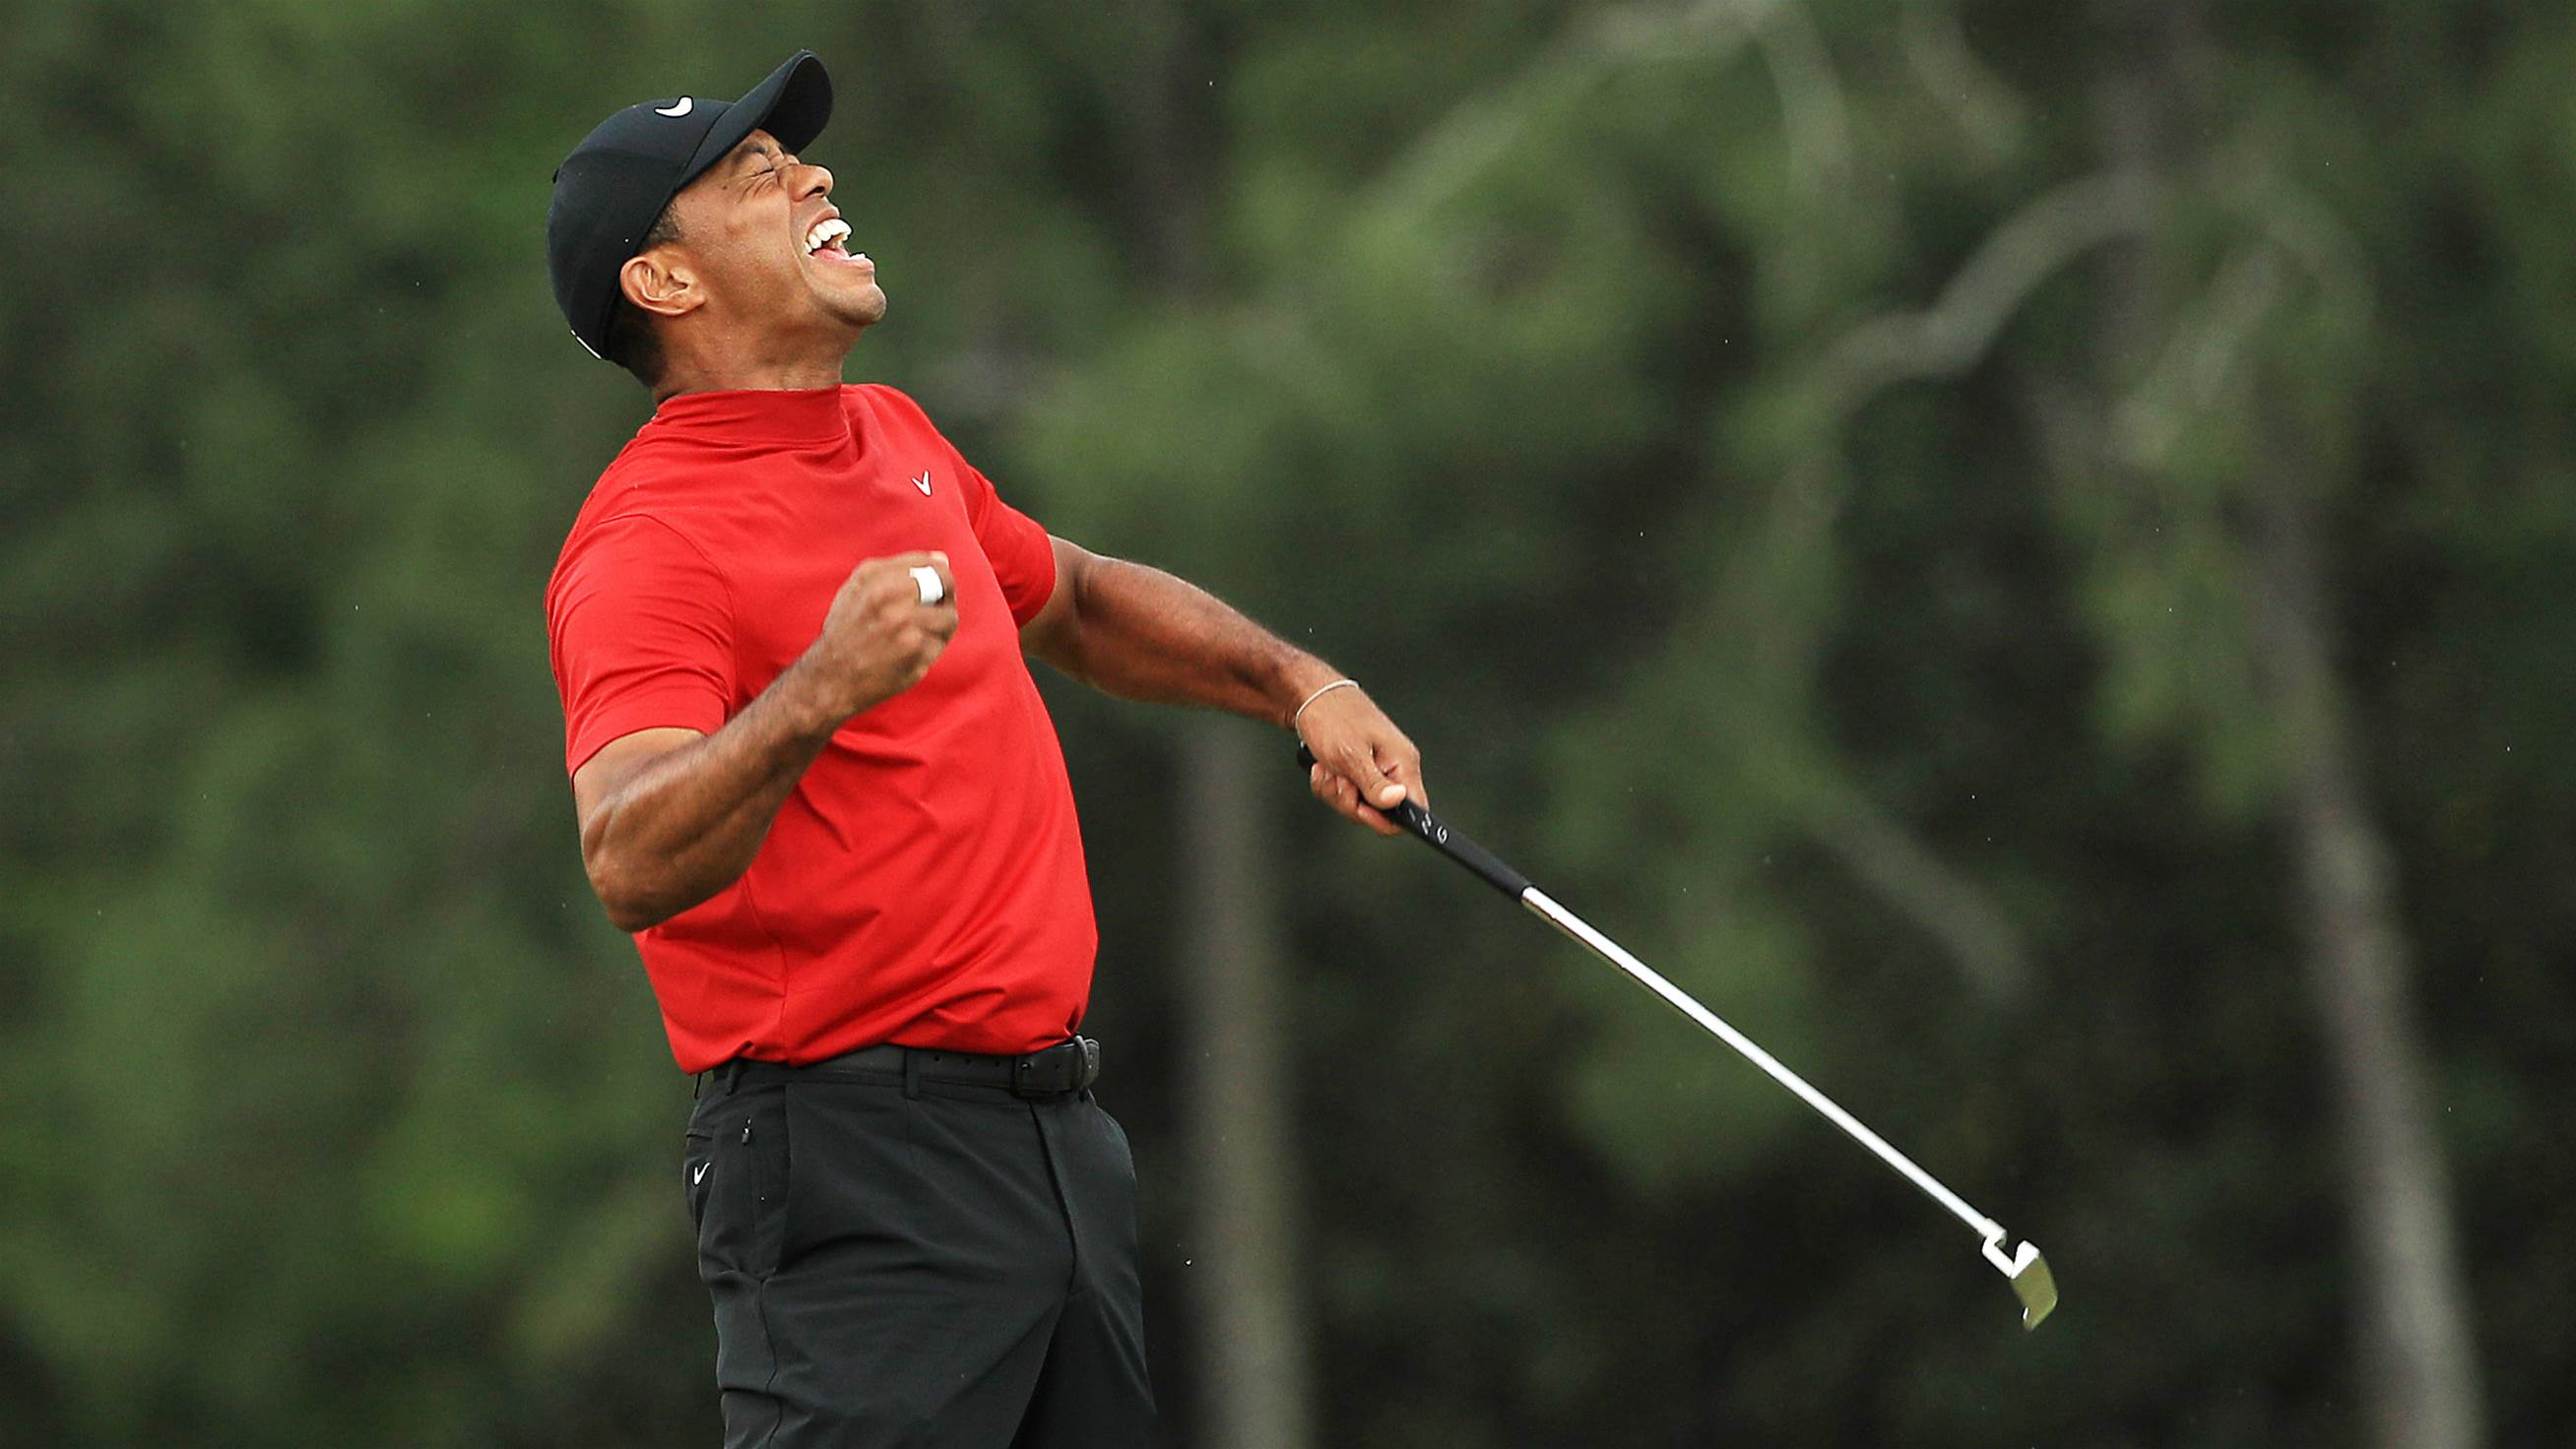 Morri: Tiger – The golfing gift that just keeps on giving